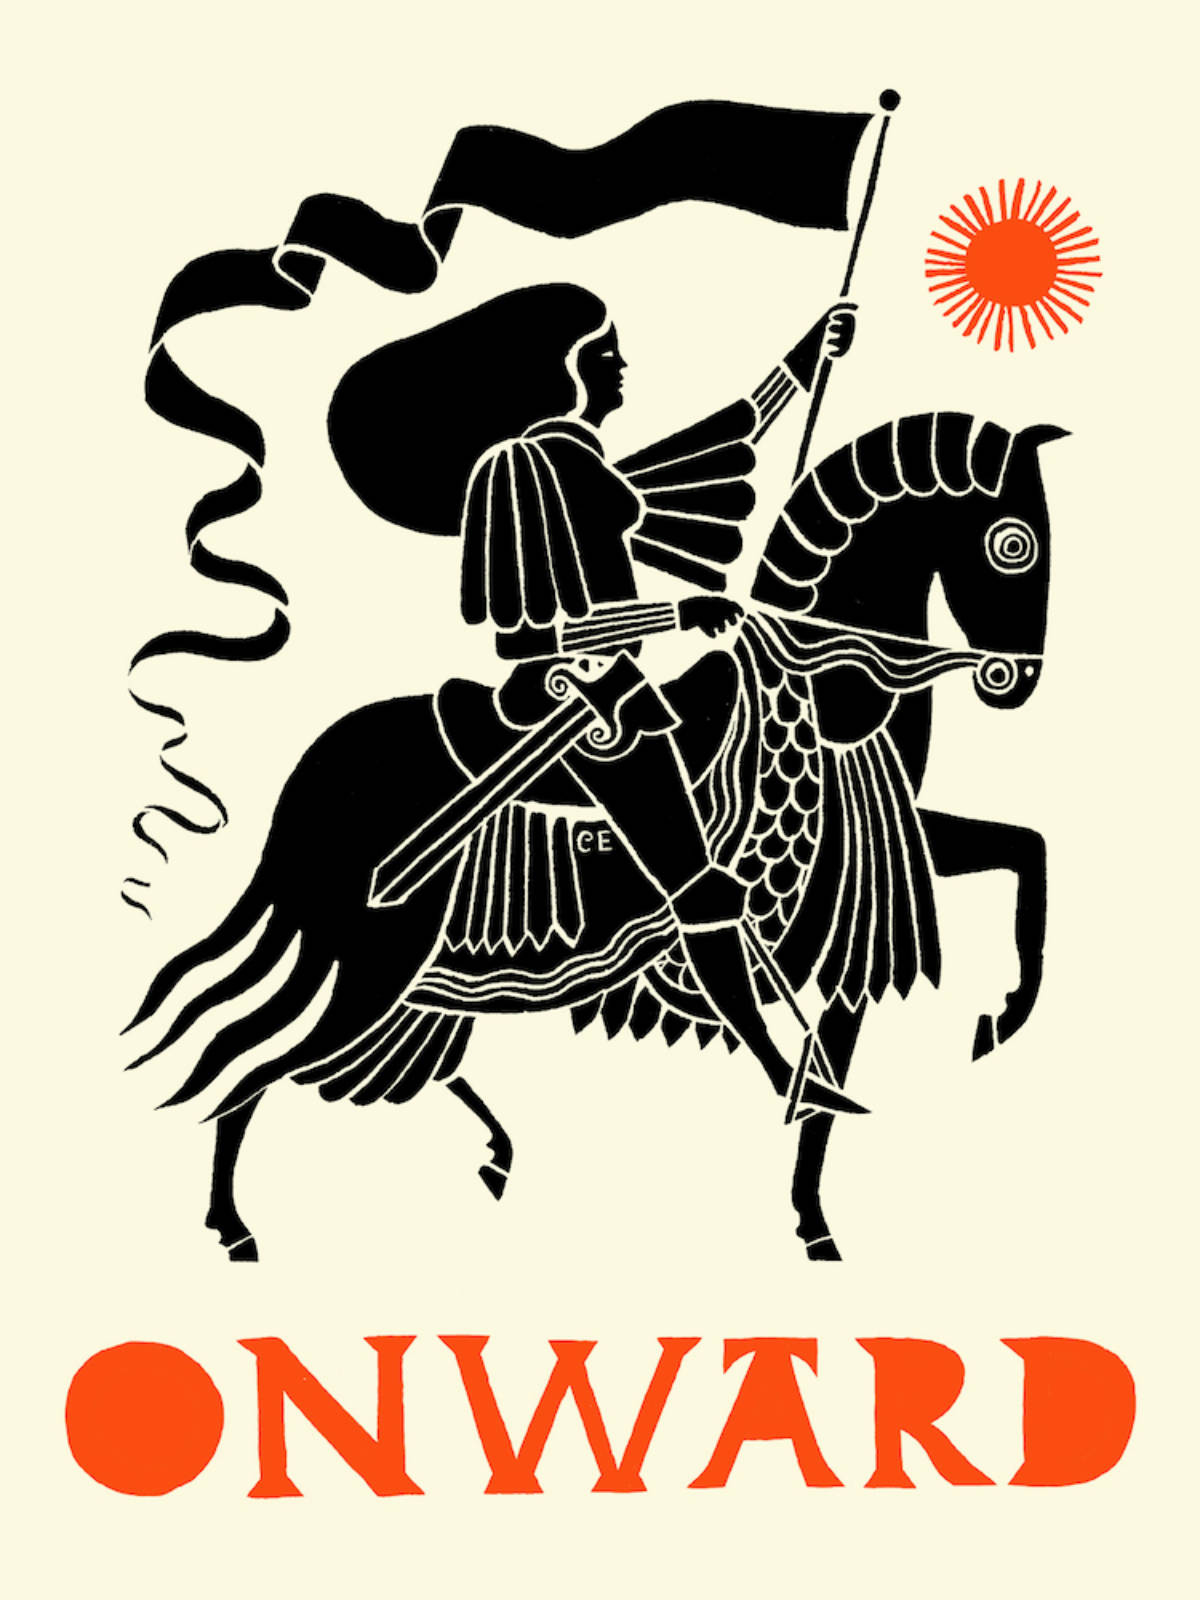 An illustration of a female knight flying a flag while riding a horse.